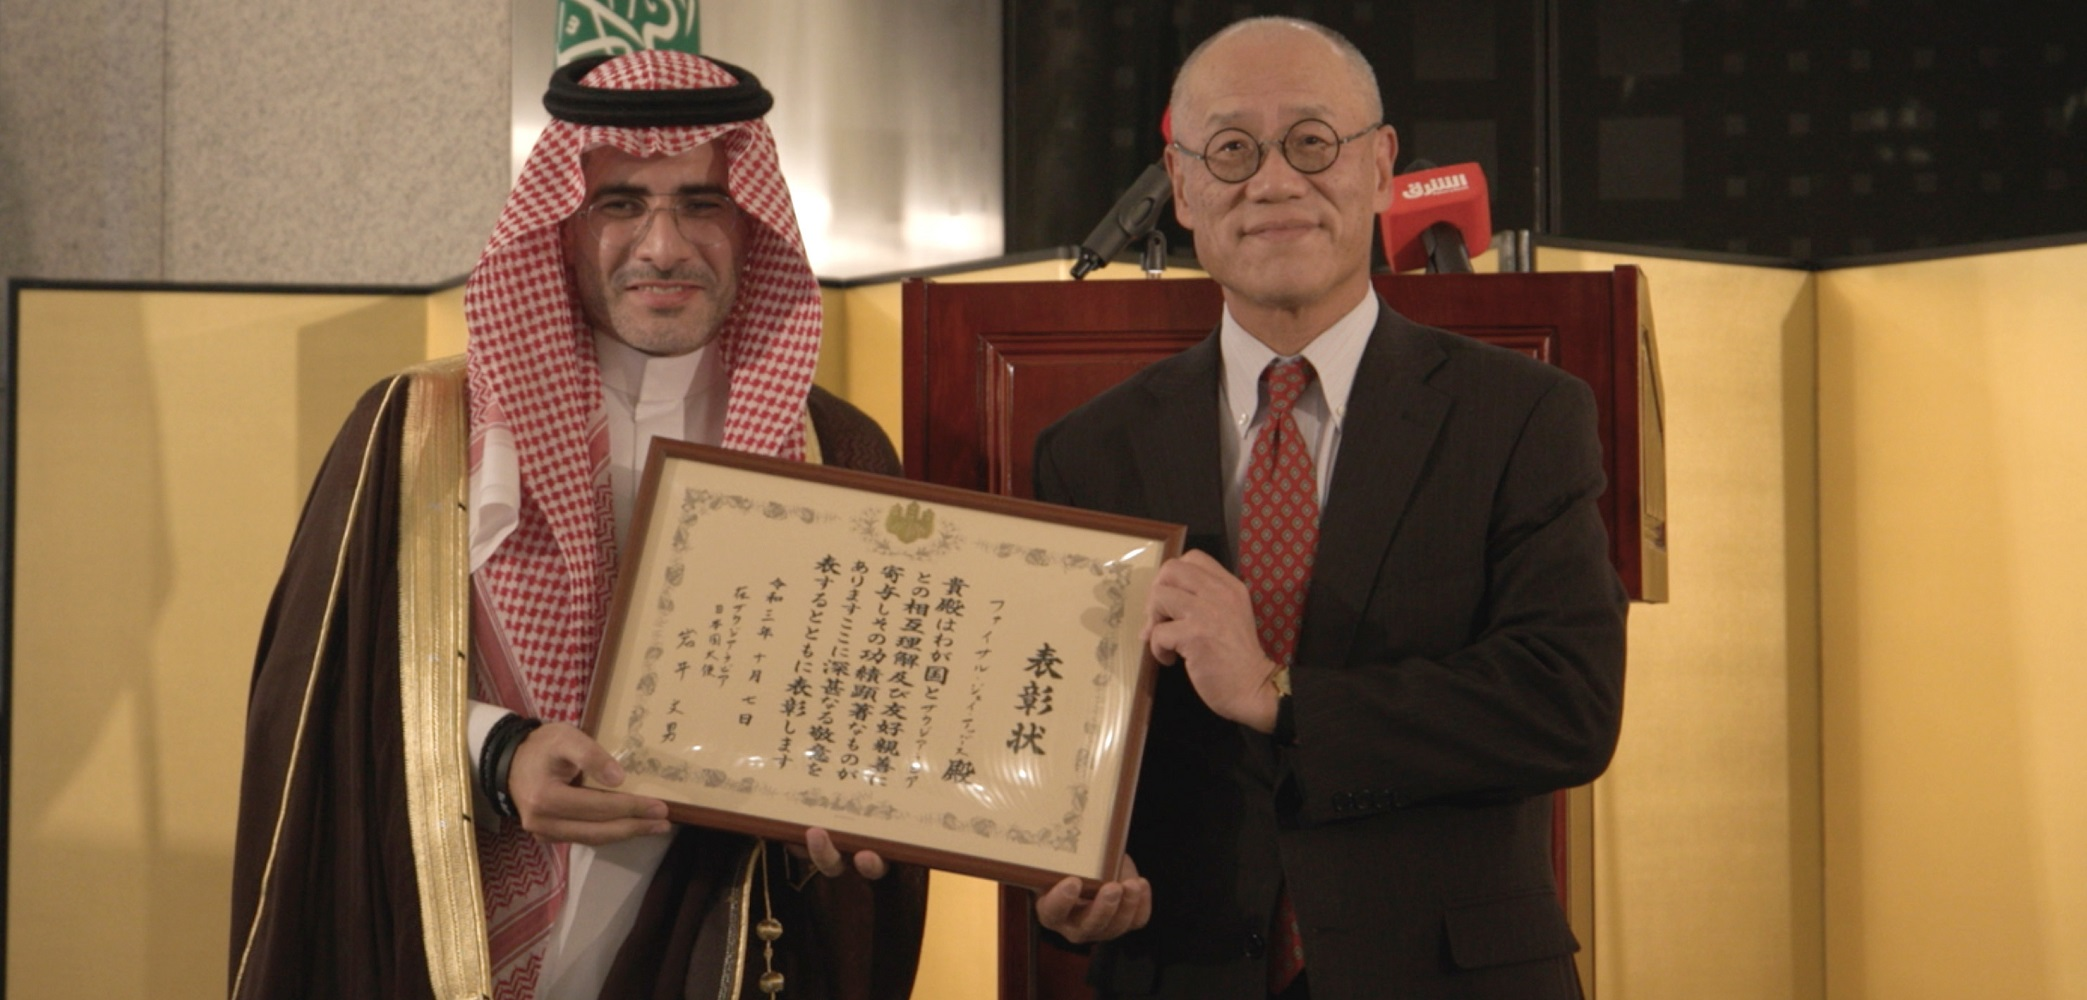 ambassador-of-japan-celebrates-commendation-for-faisal-j-abbas-editor-in-chief-of-arab-news